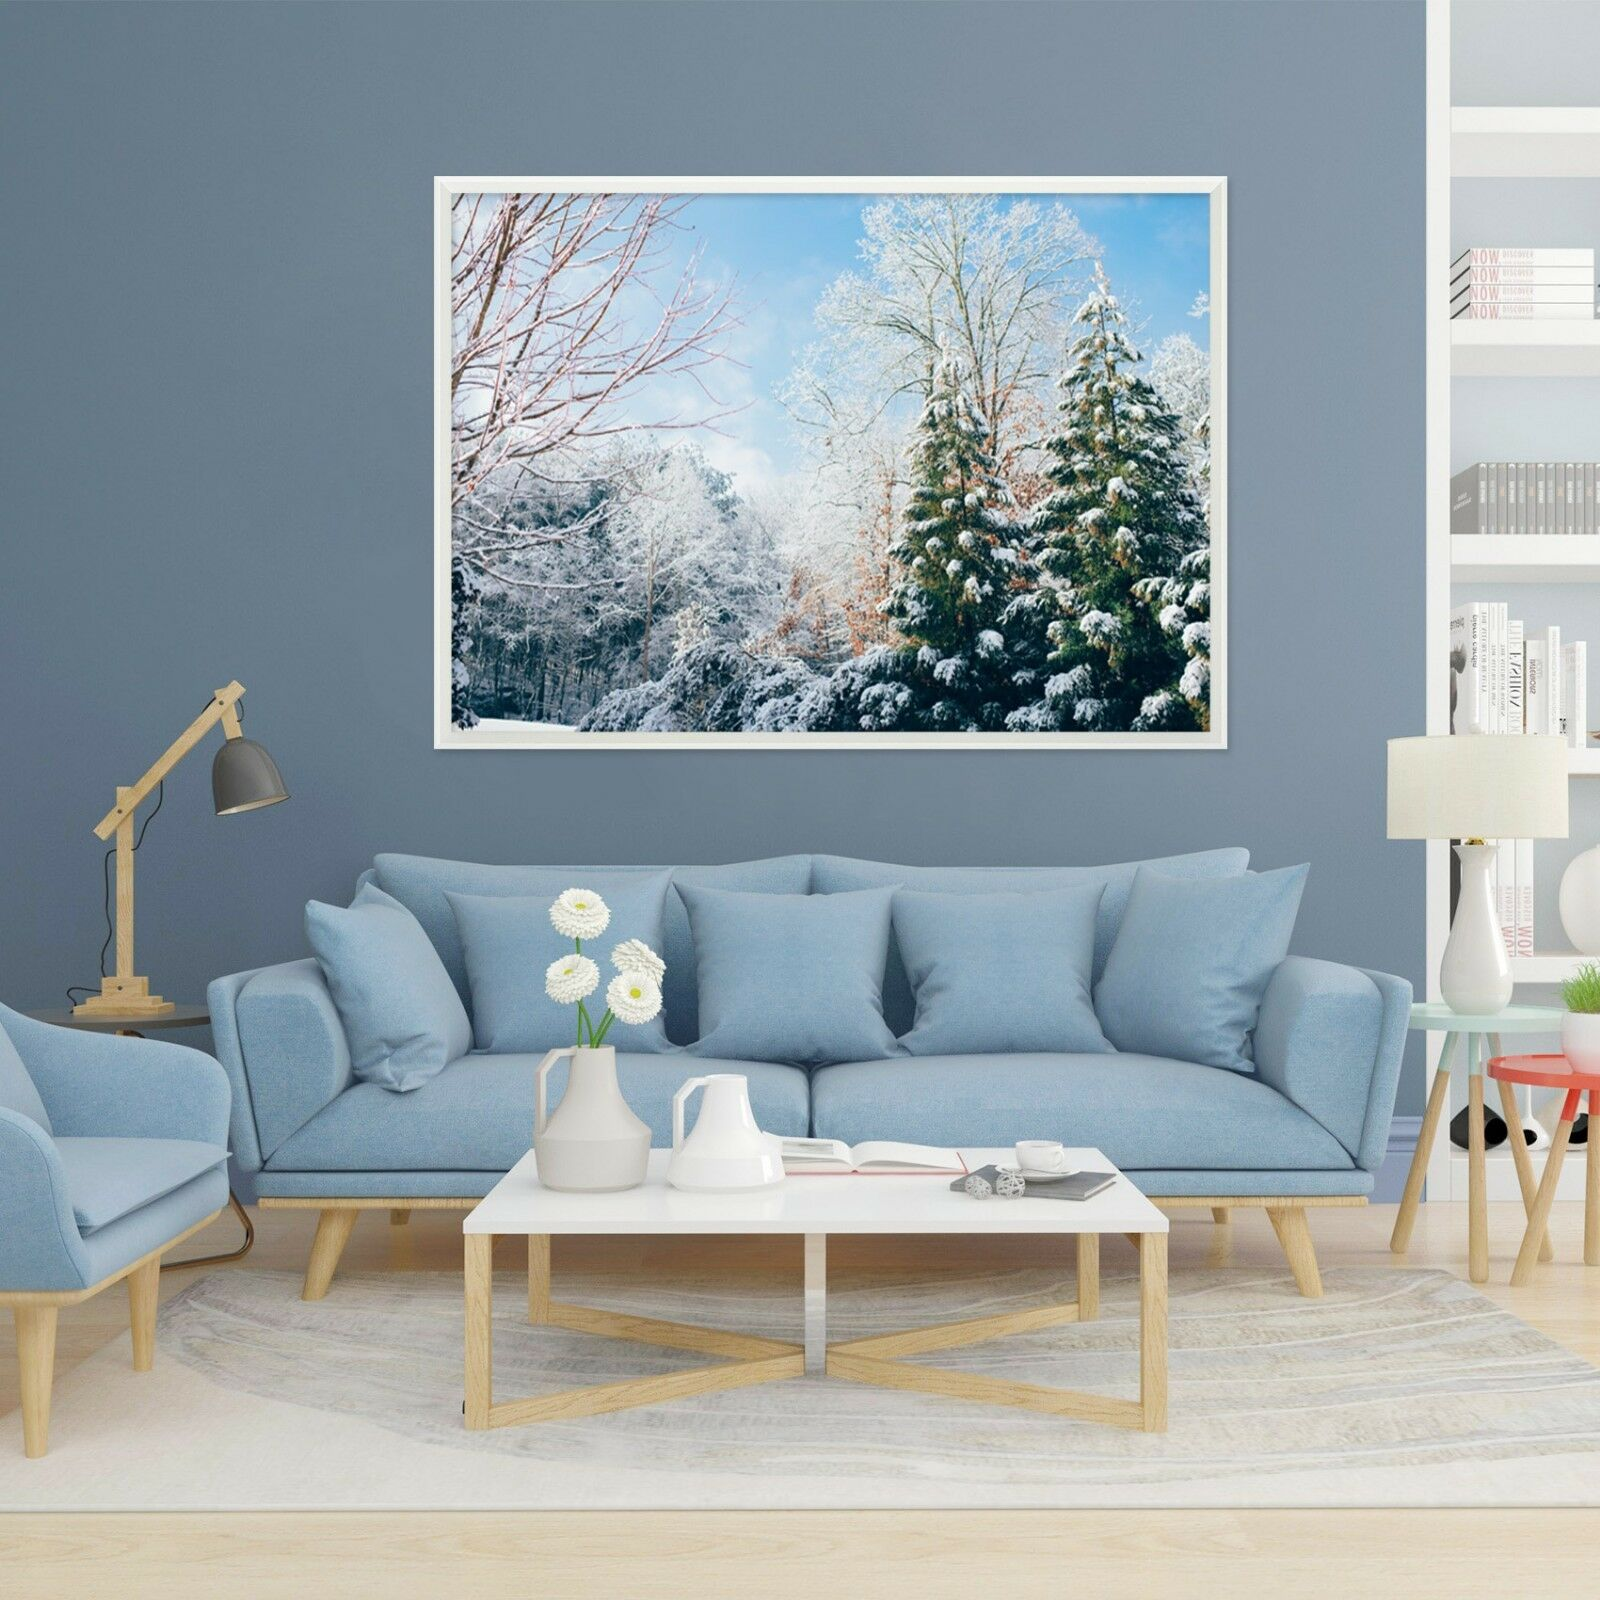 3D Snow Forest 55 Framed Poster Home Decor Print Painting Art AJ WALLPAPER